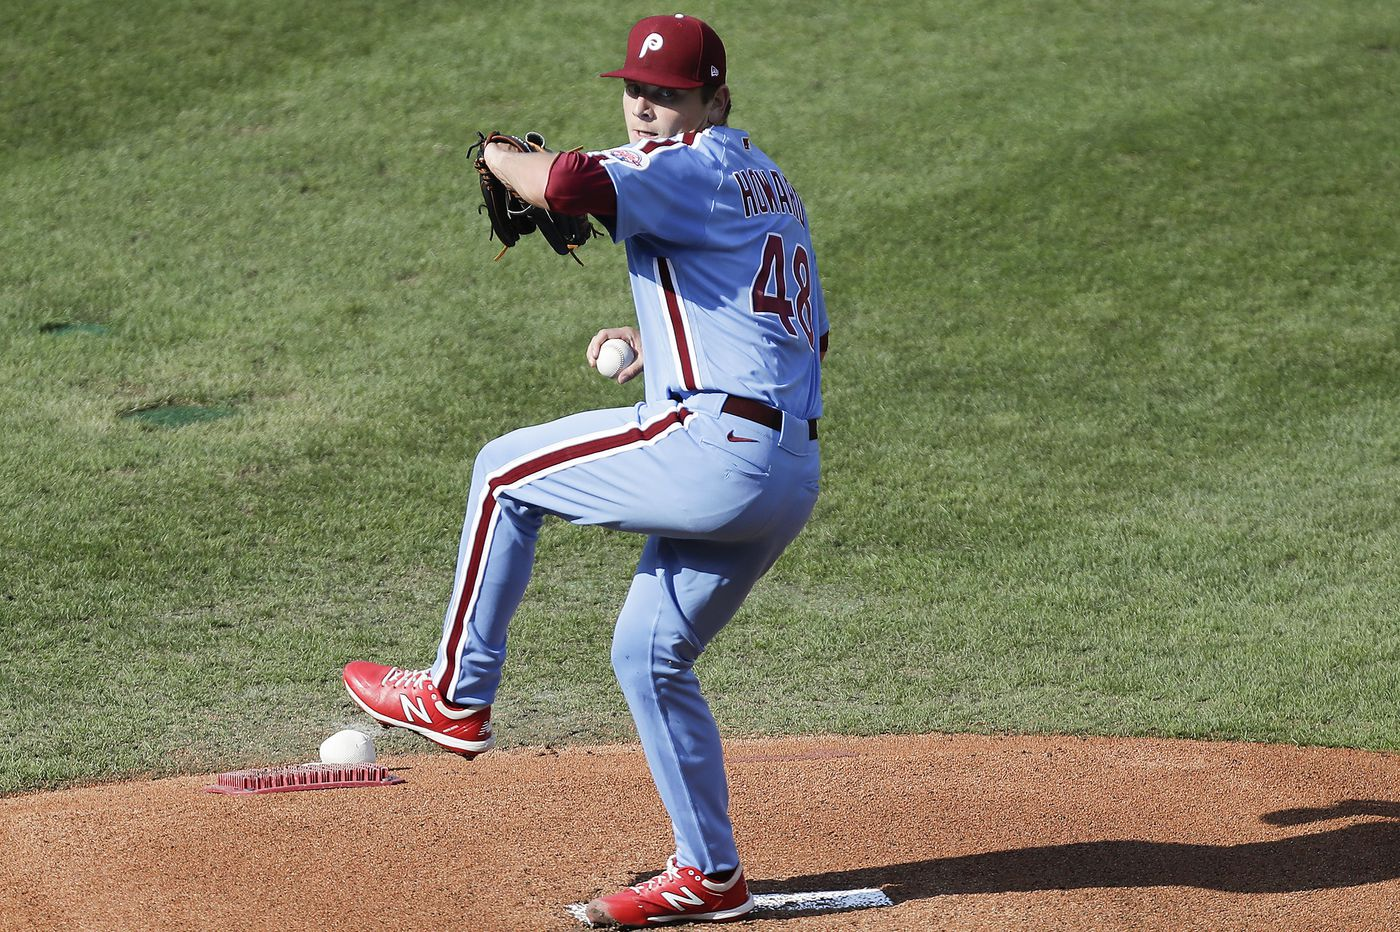 Phillies swept by Braves in doubleheader as Spencer Howard gives up two homers in major-league debut